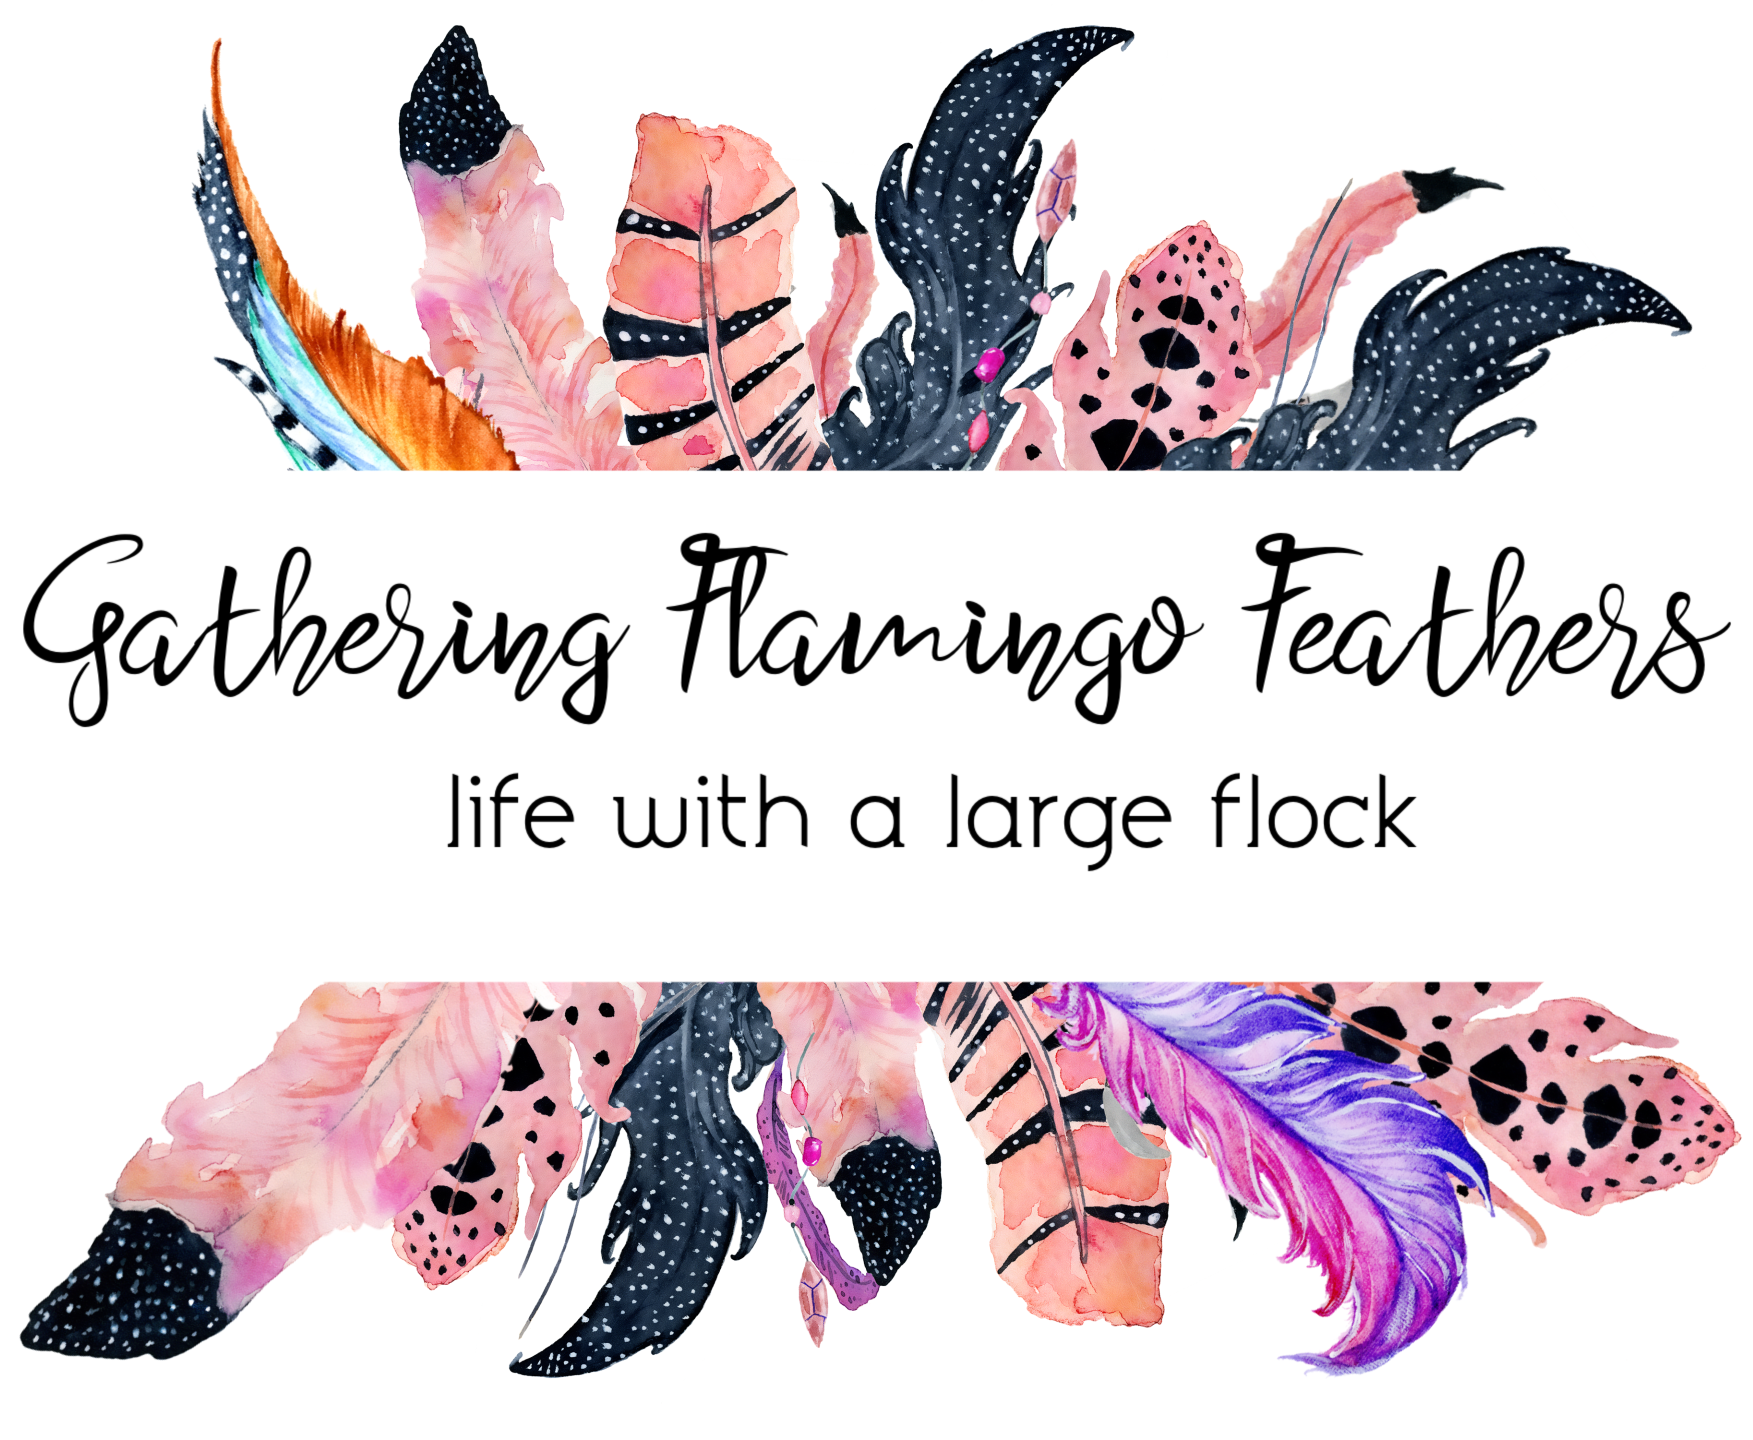 FlamingoFeathersHeader